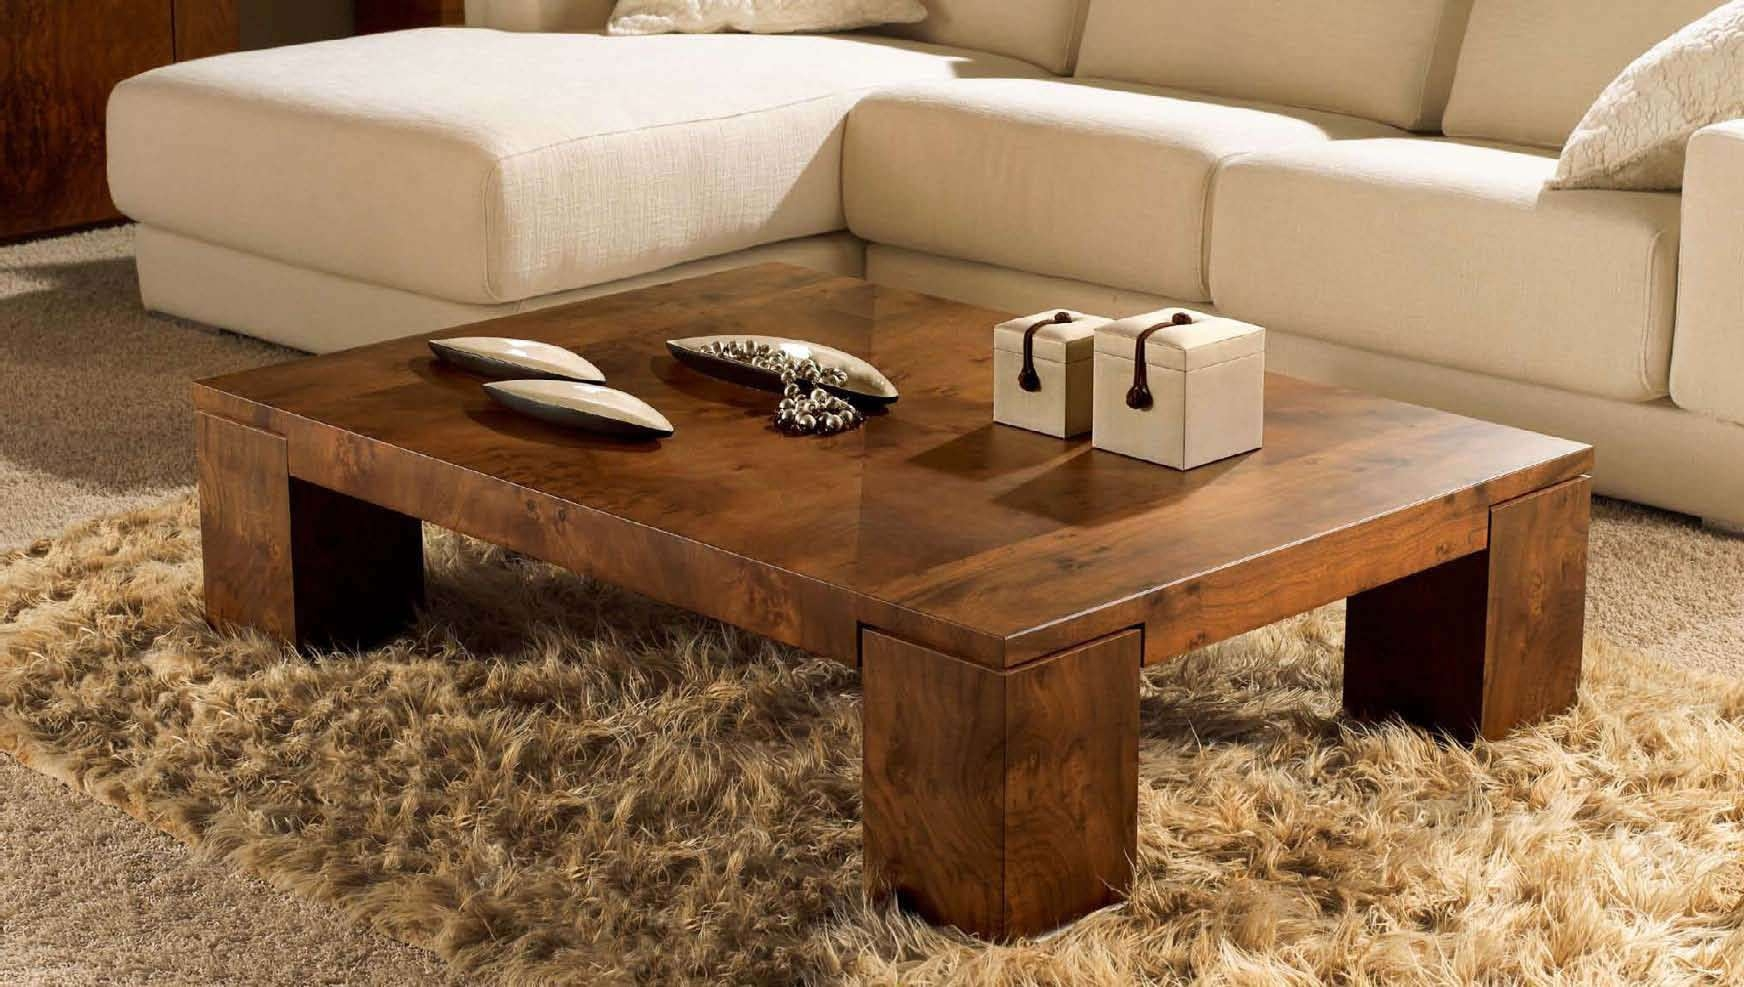 Easy Wooden Coffee Table Set For Small Home Decor Inspiration Intended For Newest Wooden Coffee Tables (View 8 of 20)